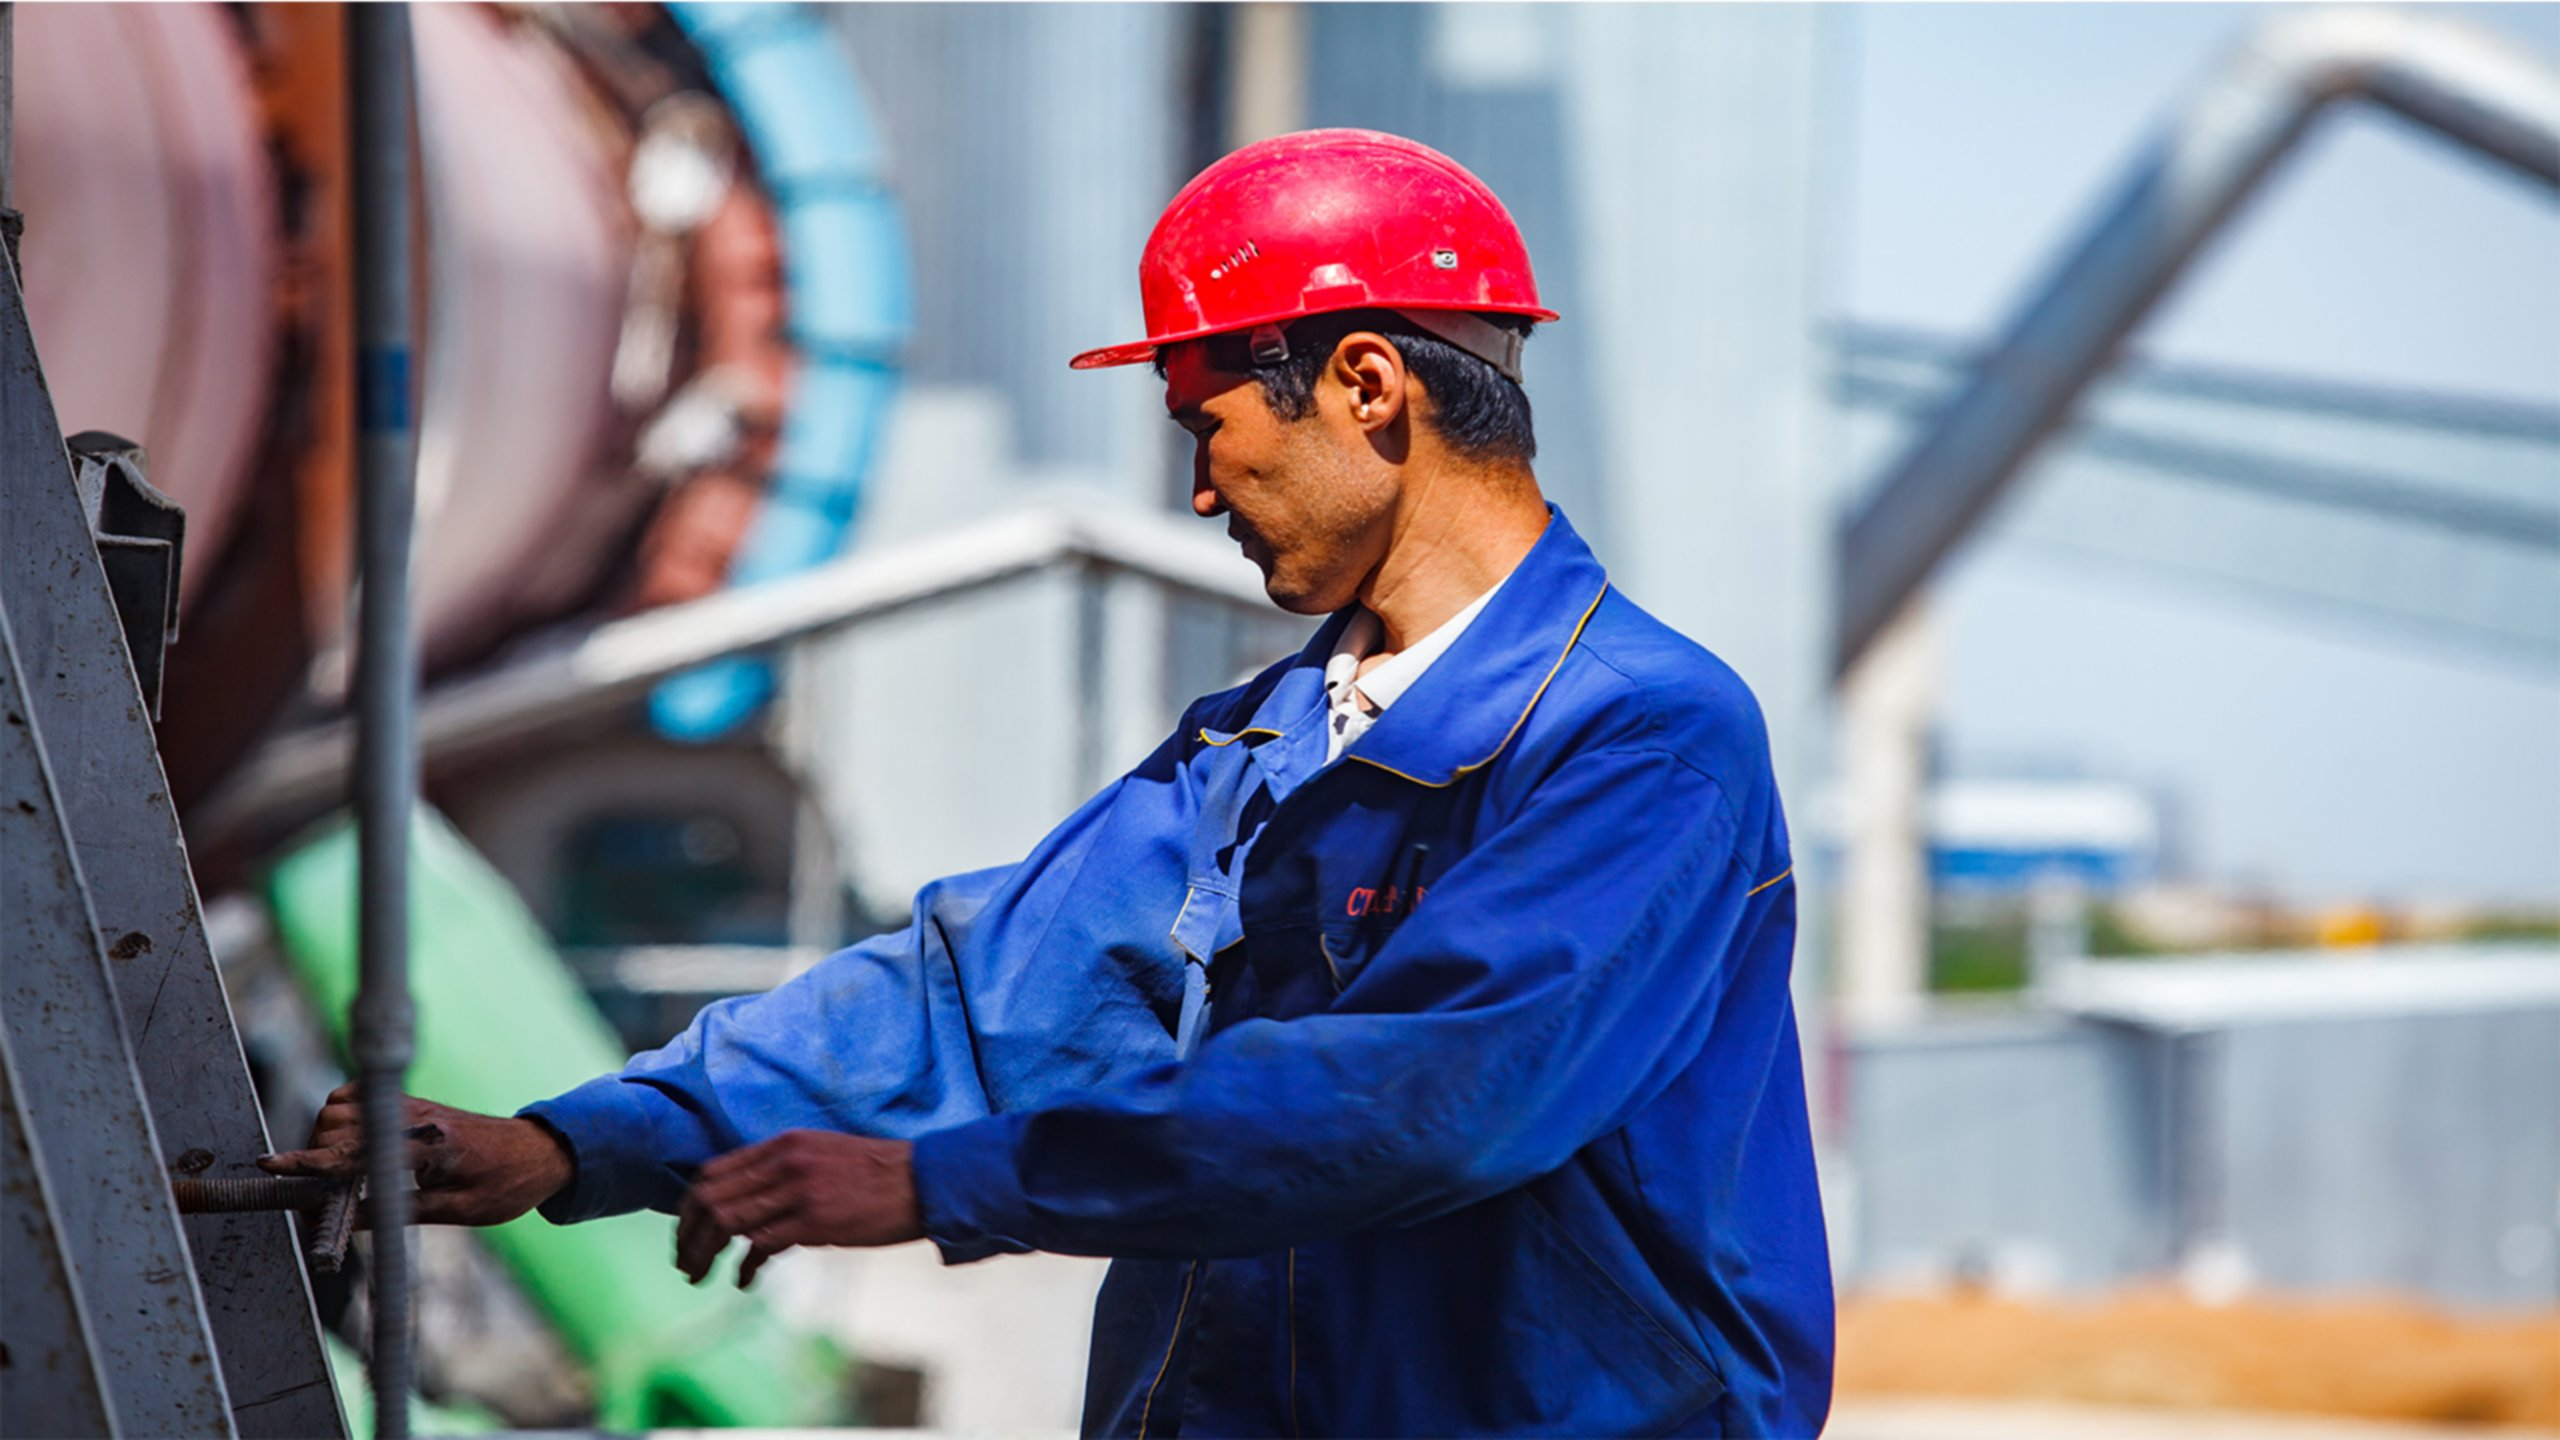 man in blue coverall and red hard hat operating cement kiln